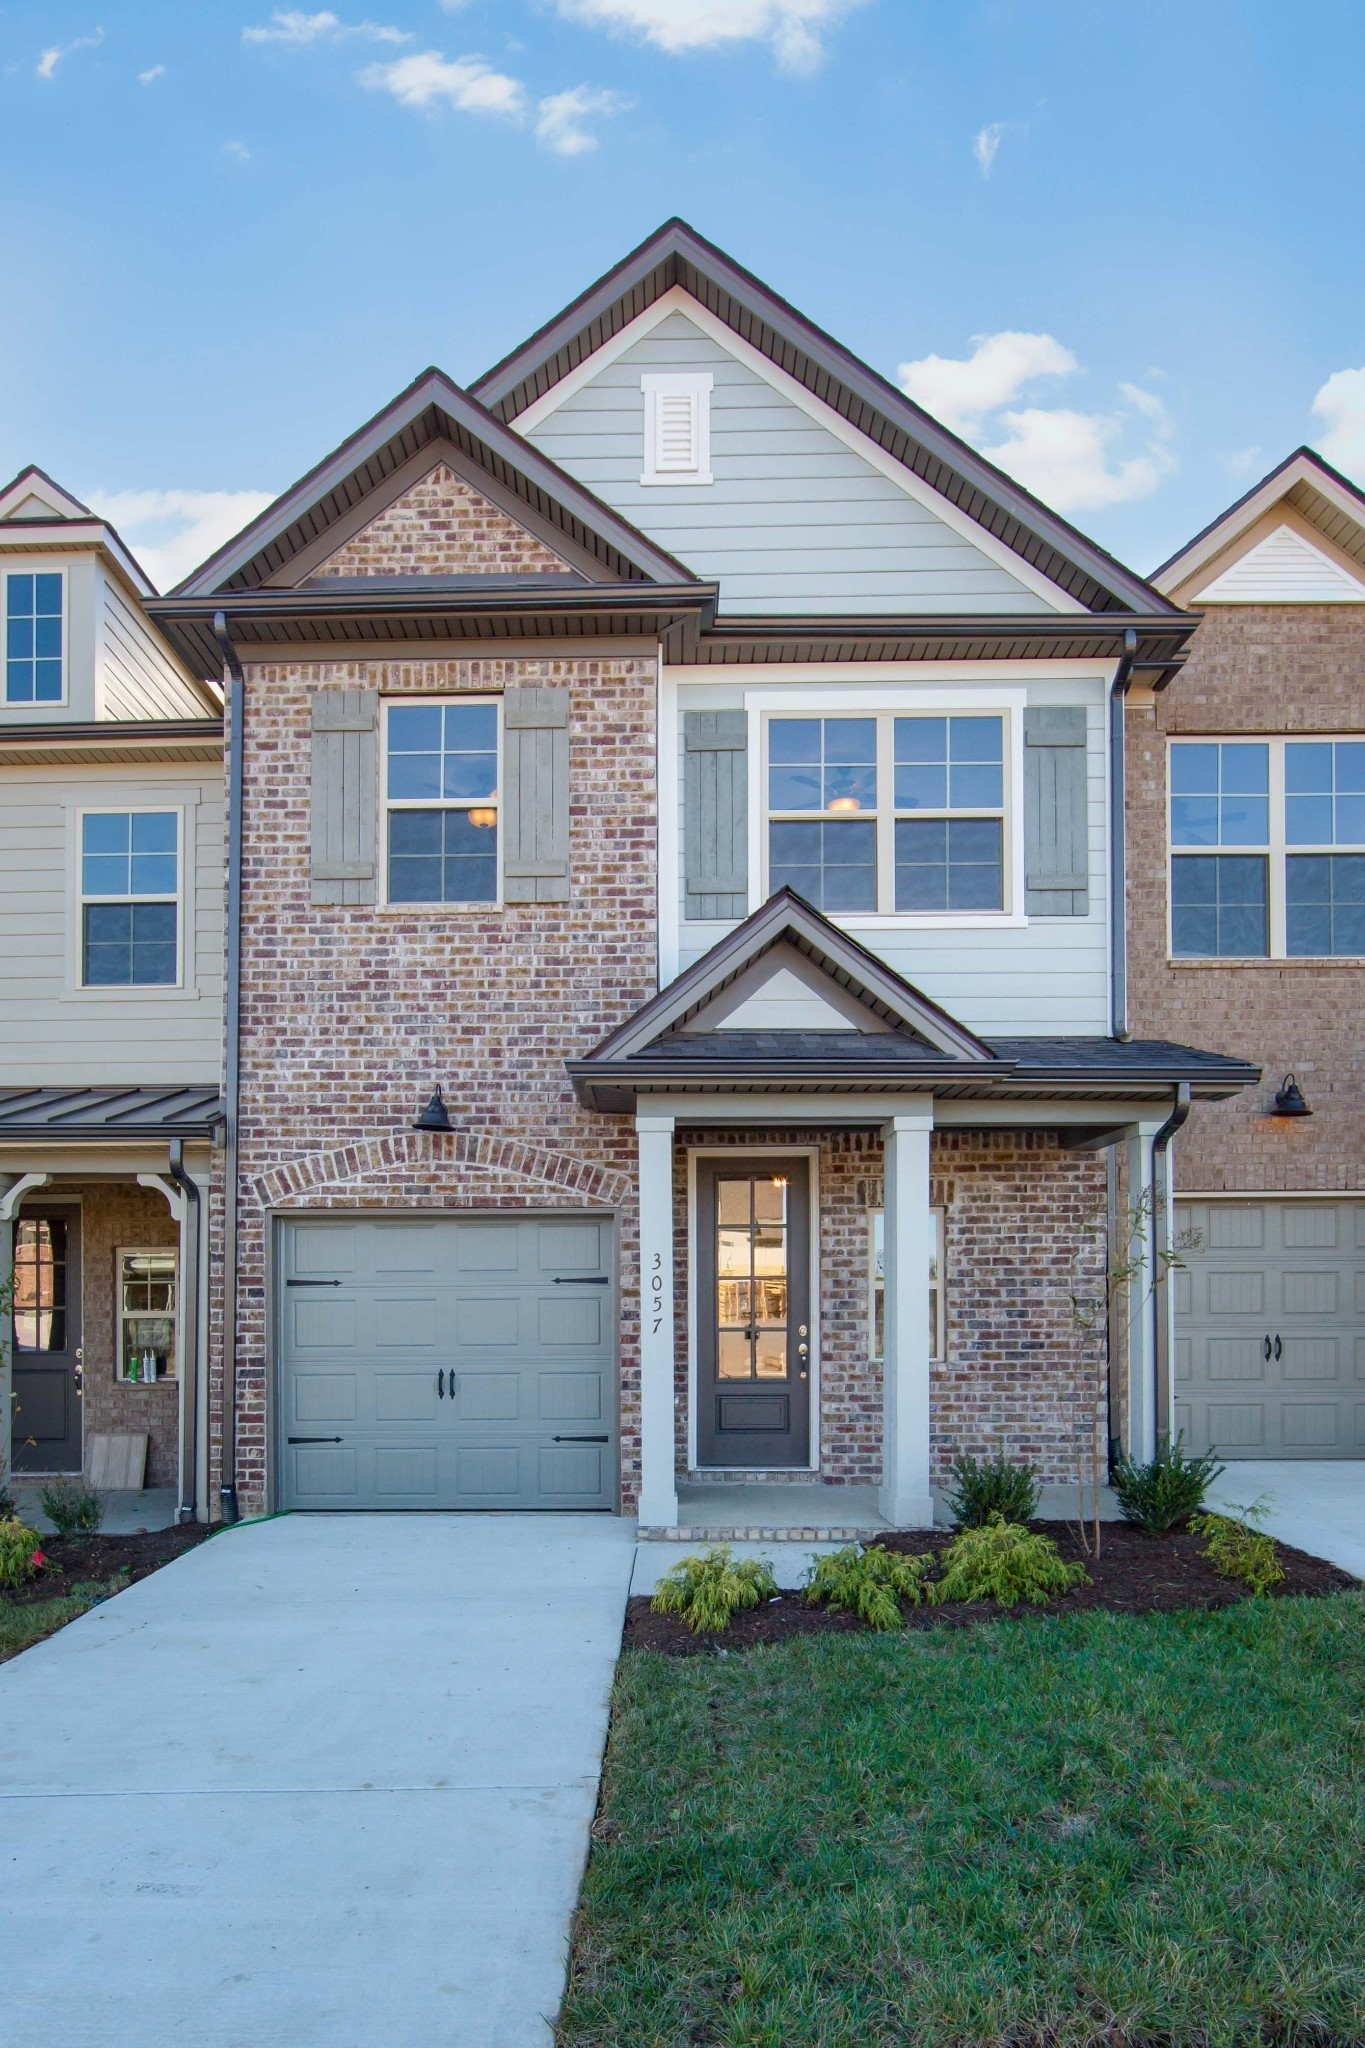 The Biltmore plan by Willow Branch Homes features a First Floor Owners Suite, open kitchen/dining/living room that leads onto a covered patio over looking green space & half bath.  Upstairs boasts a bonus area, two more bedrooms and a full bath. Included features: Granite in Kit and Bths, Hardwood First Floor living area and Stairs, Full tiled shower in owners bath, Soft Close Cabinets and more!!  Additional interior units available.. Photos not of actual unit.. Ready Dec. 2020!!